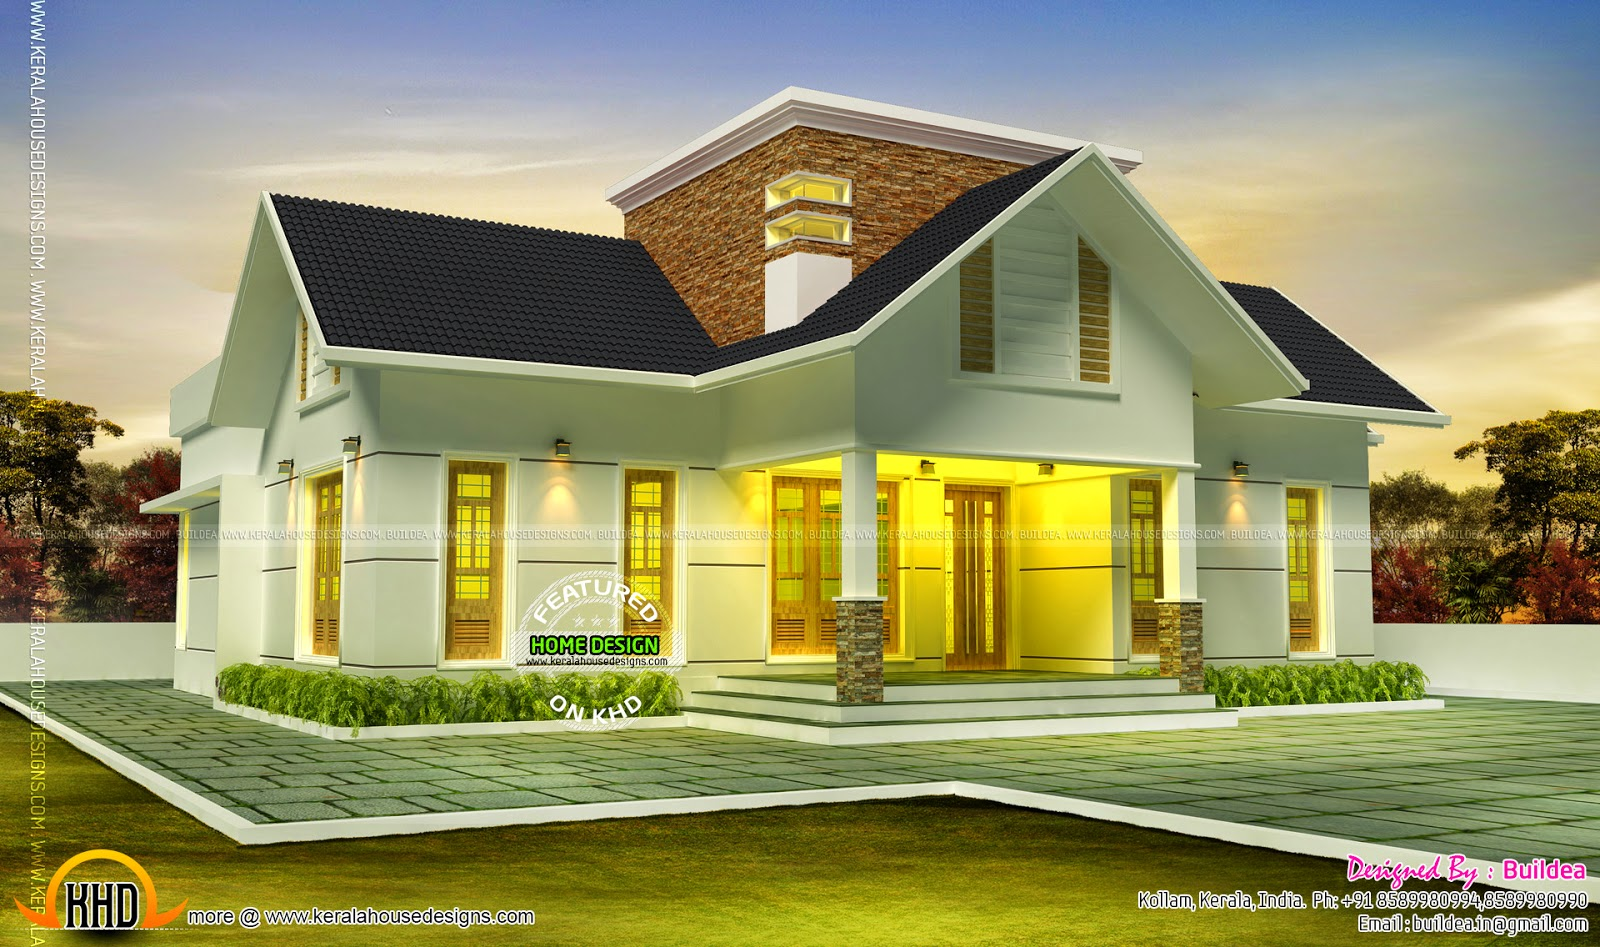 Very beautiful house kerala home design and floor plans for House beautiful house plans